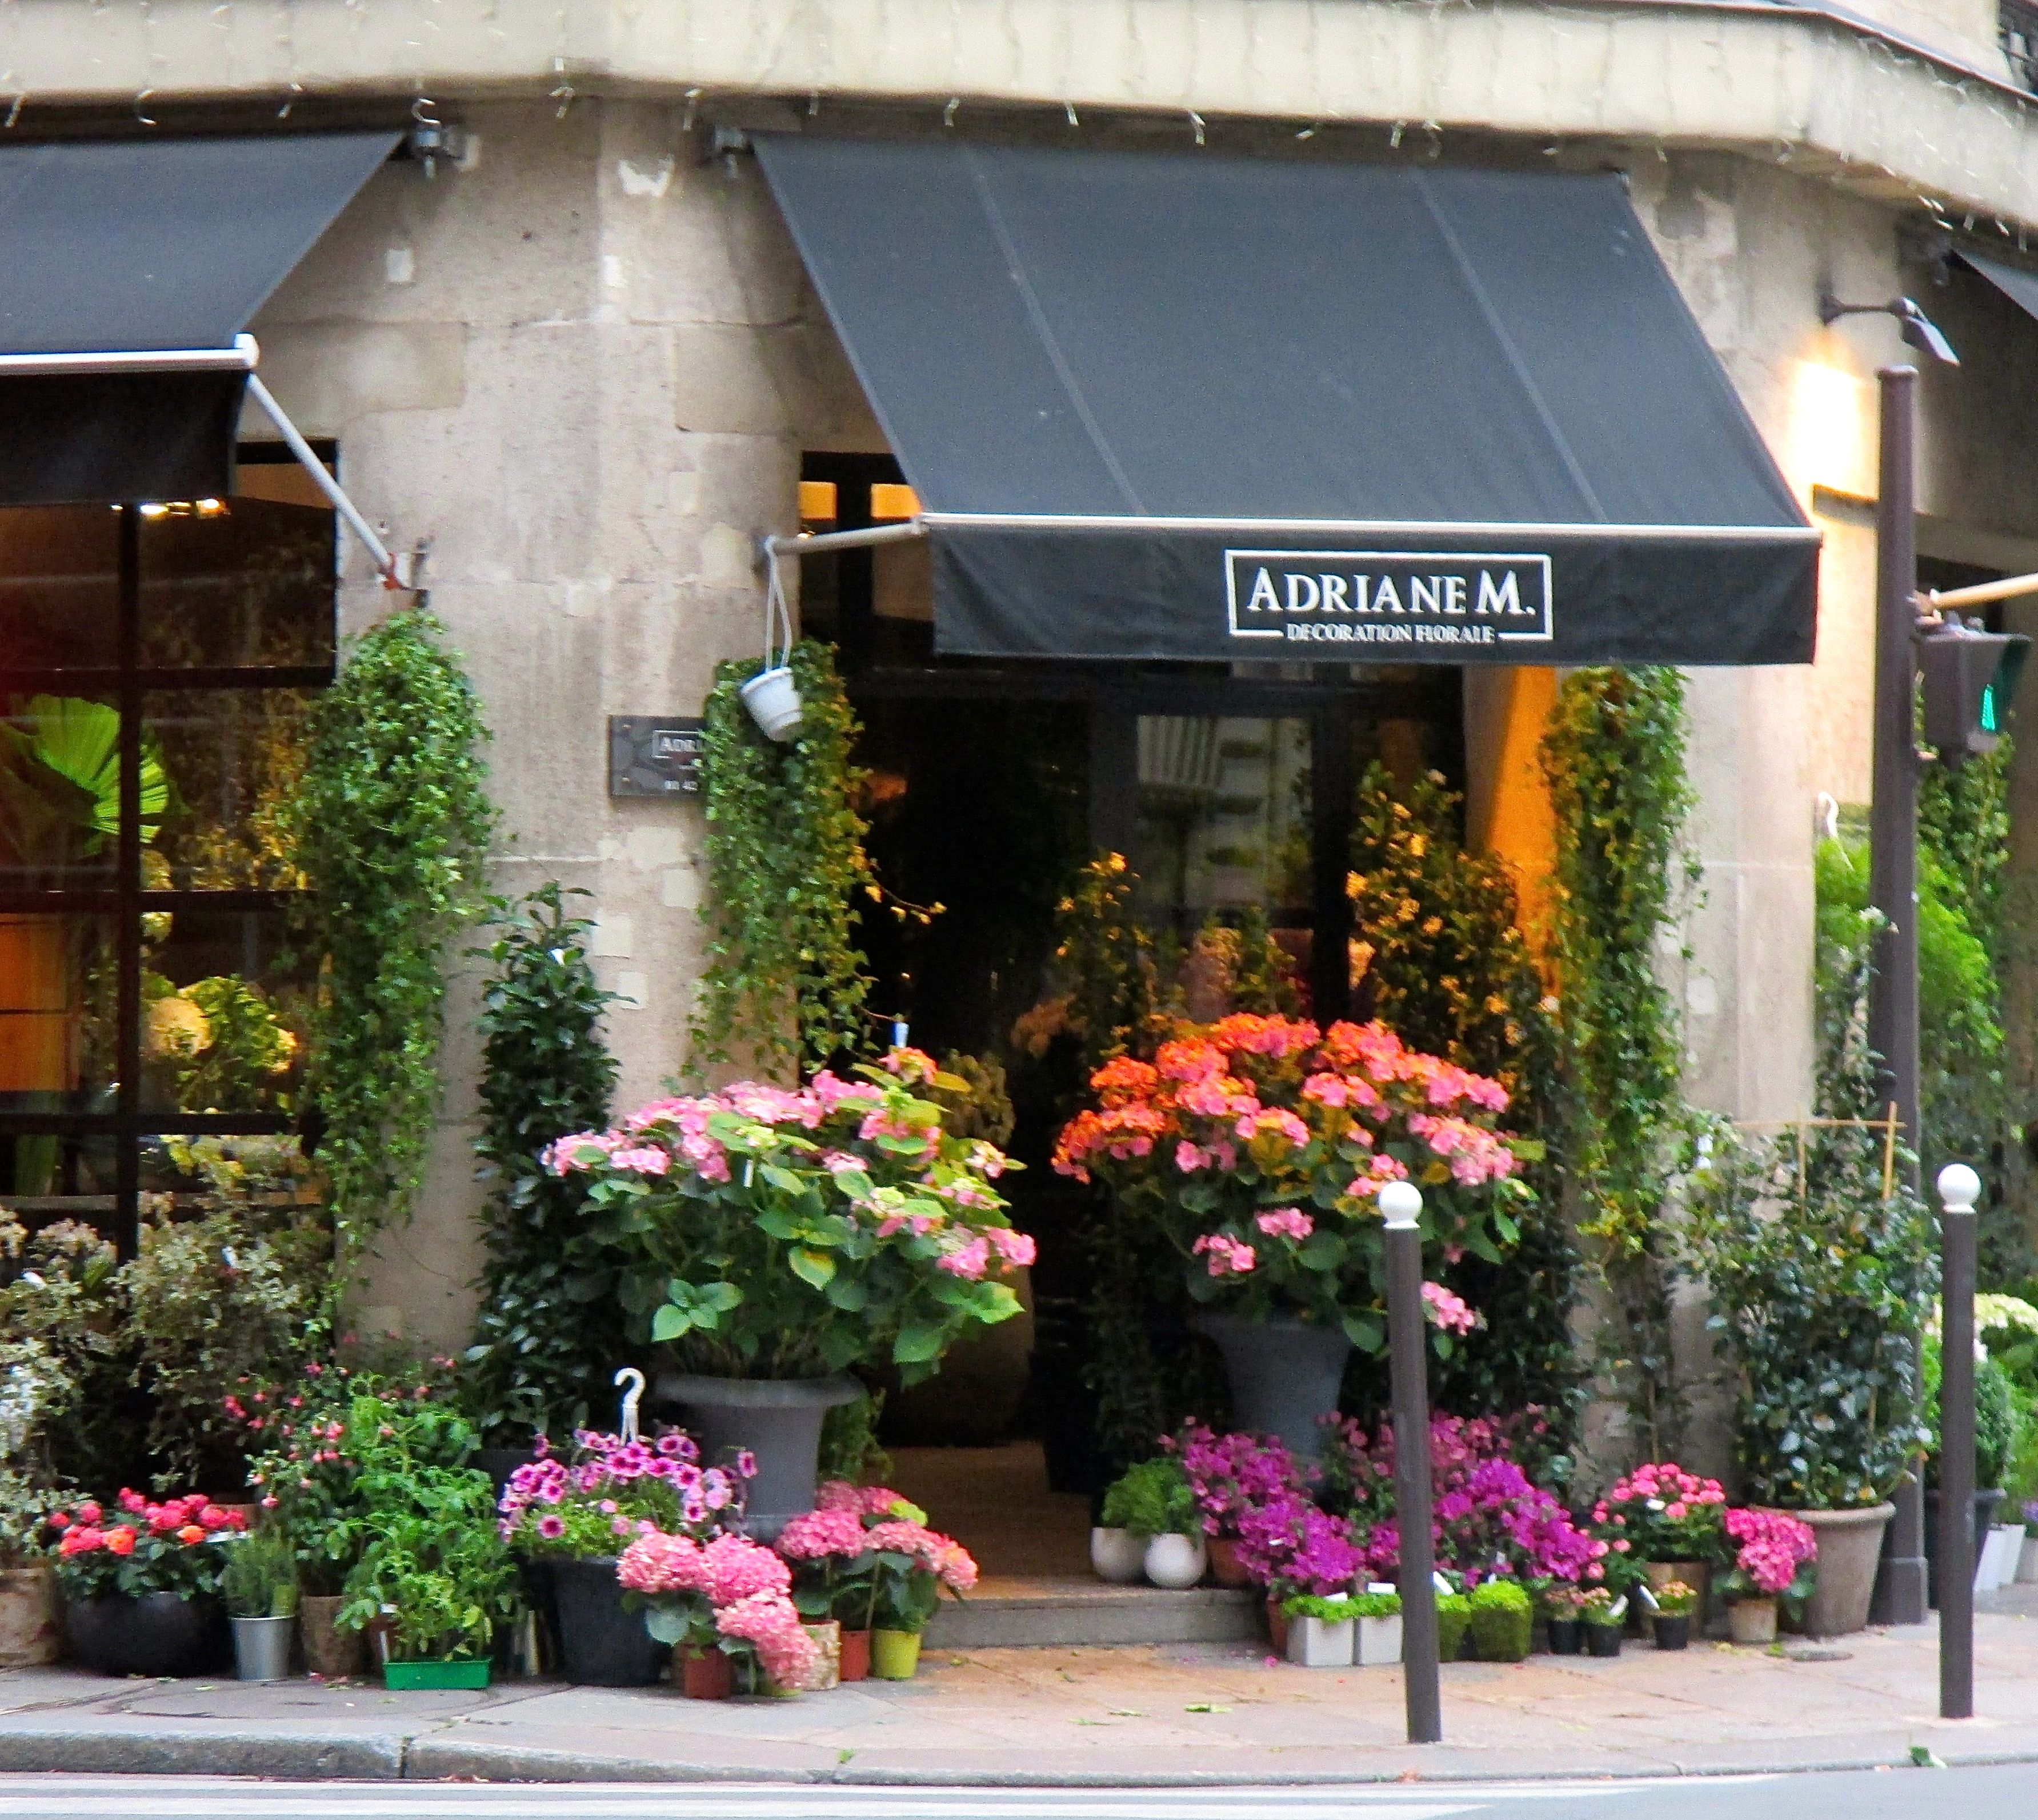 Flowers beautiful flowers pouring out of a corner flower shop in flowers beautiful flowers pouring out of a corner flower shop in paris france izmirmasajfo Gallery